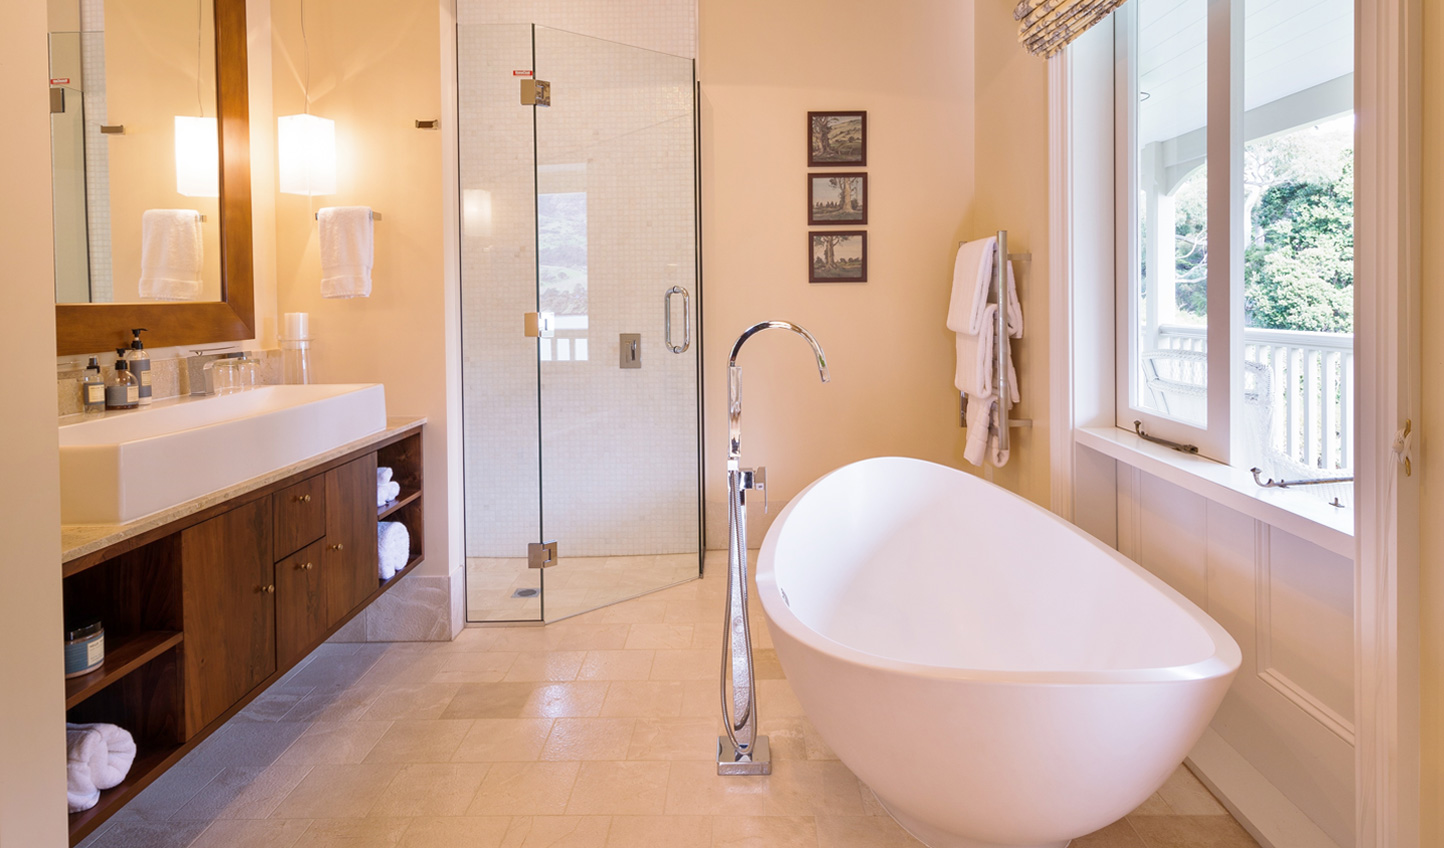 Soothe yourself in the oversized bathtub after a day of adventure